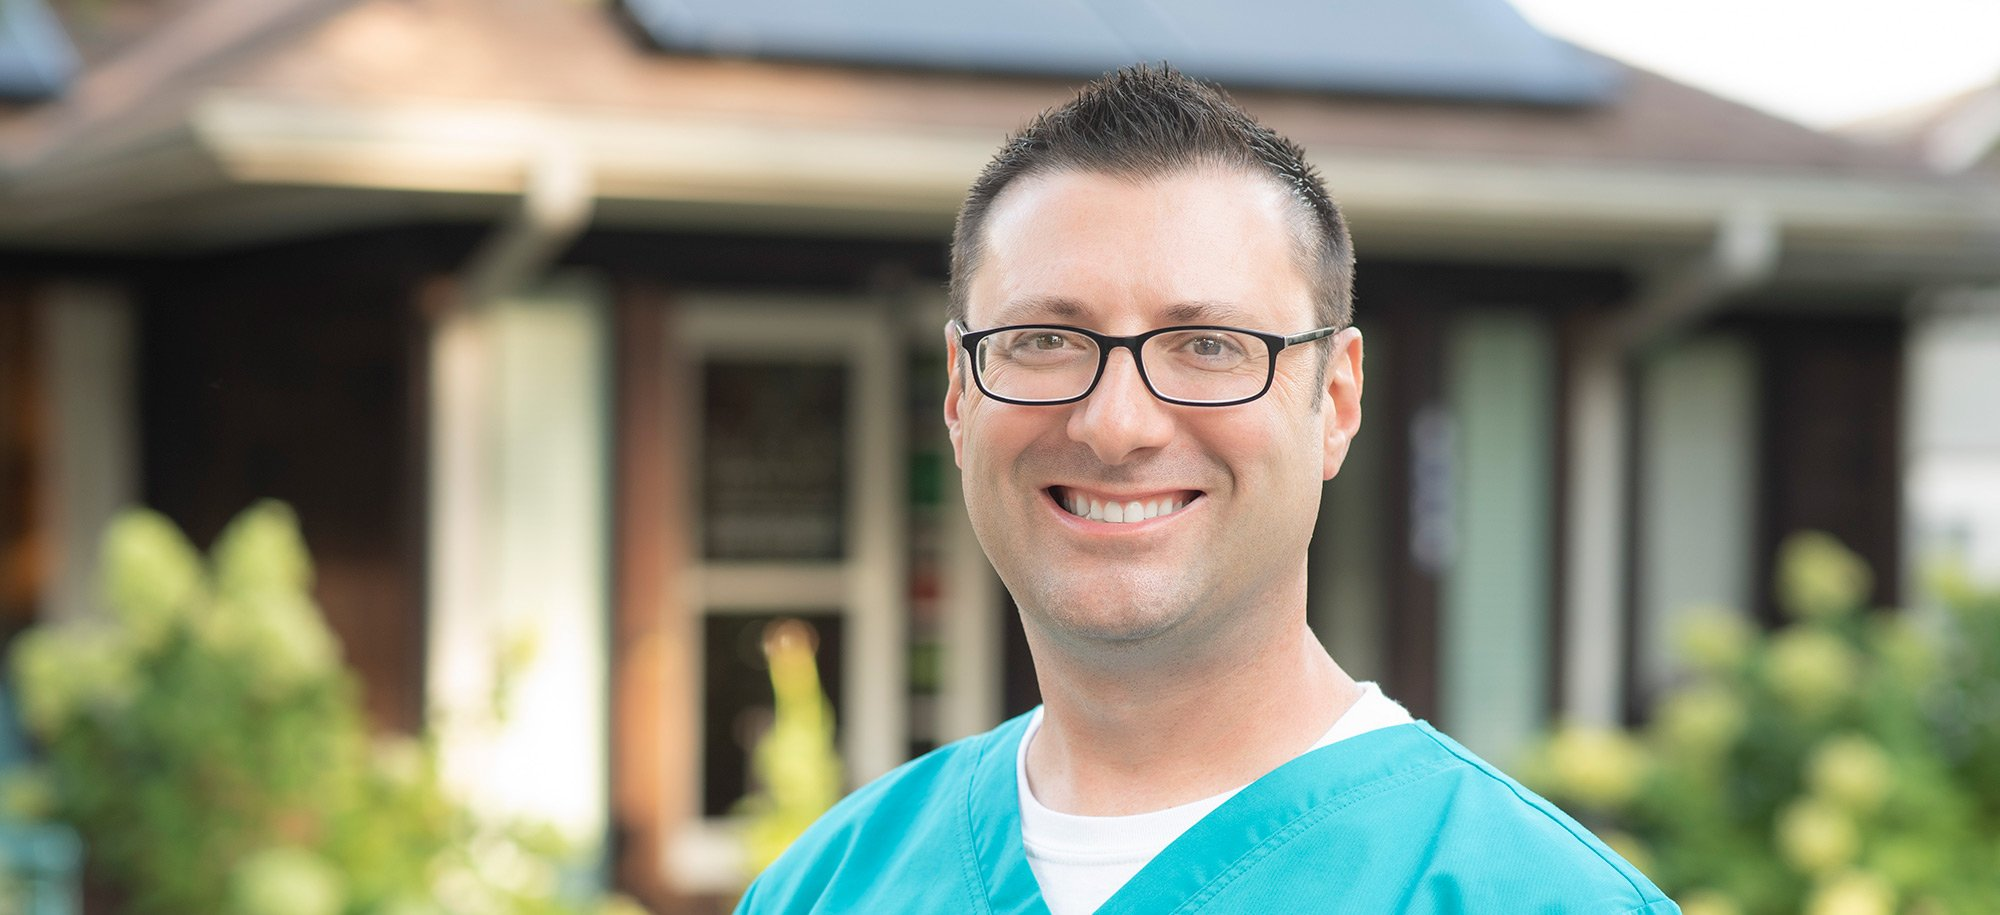 Brad, Dental Assistant